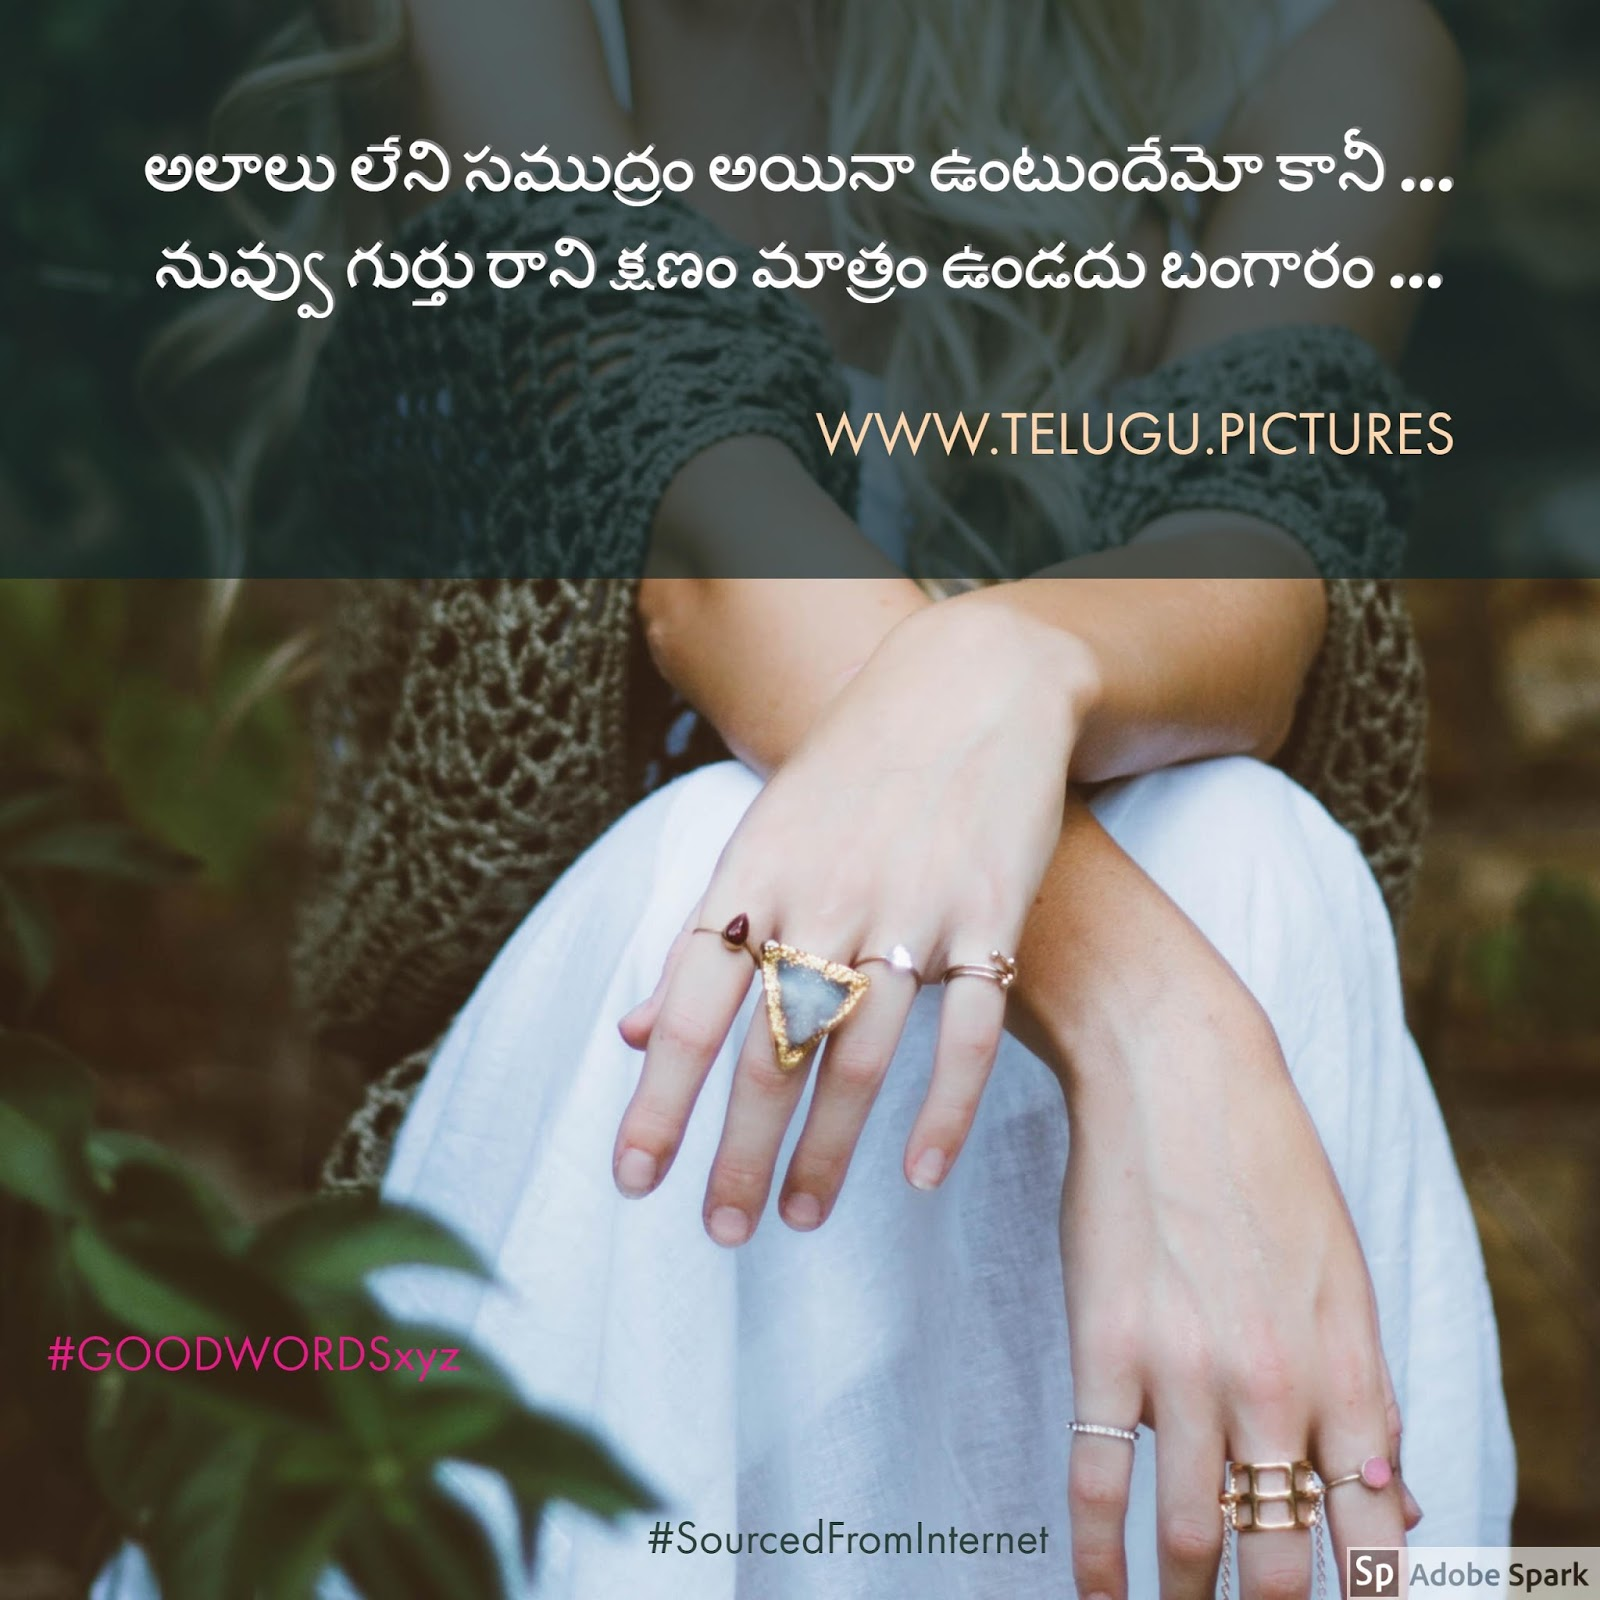 Telugu Picture Messages First Love Quote On Telugu Pictures Website